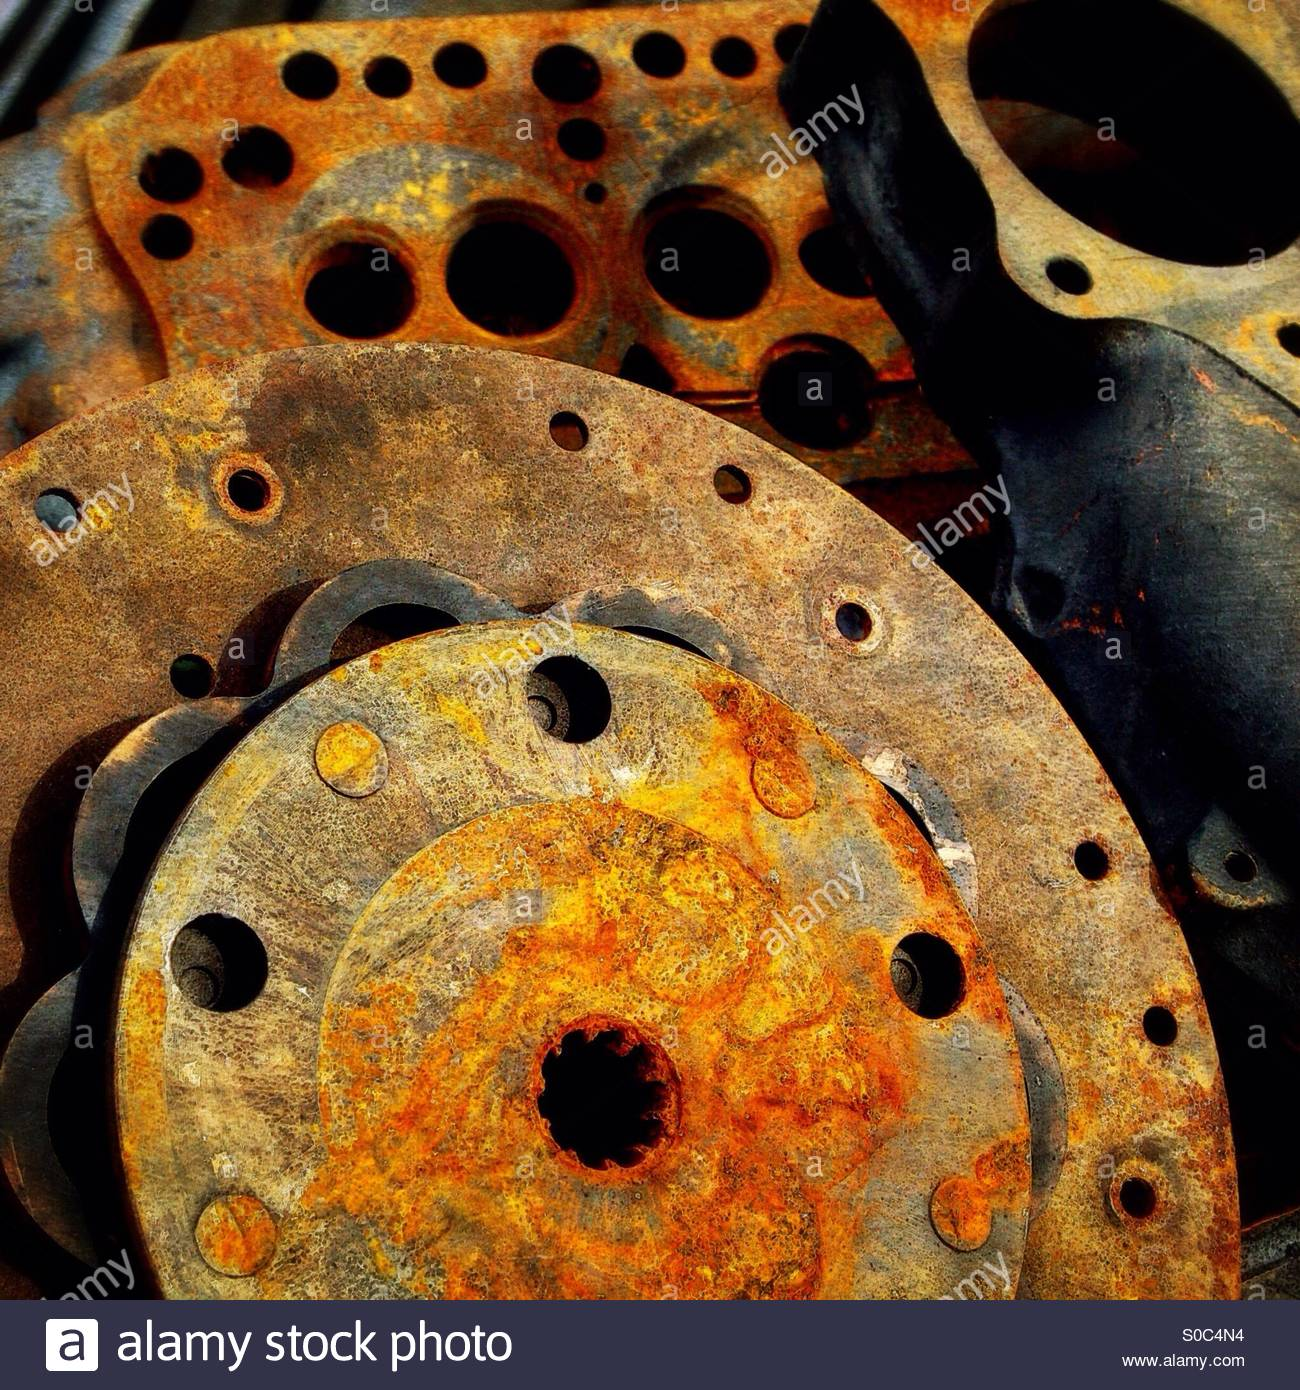 The future's orange; rusty engine parts in a boatbuilder's ...